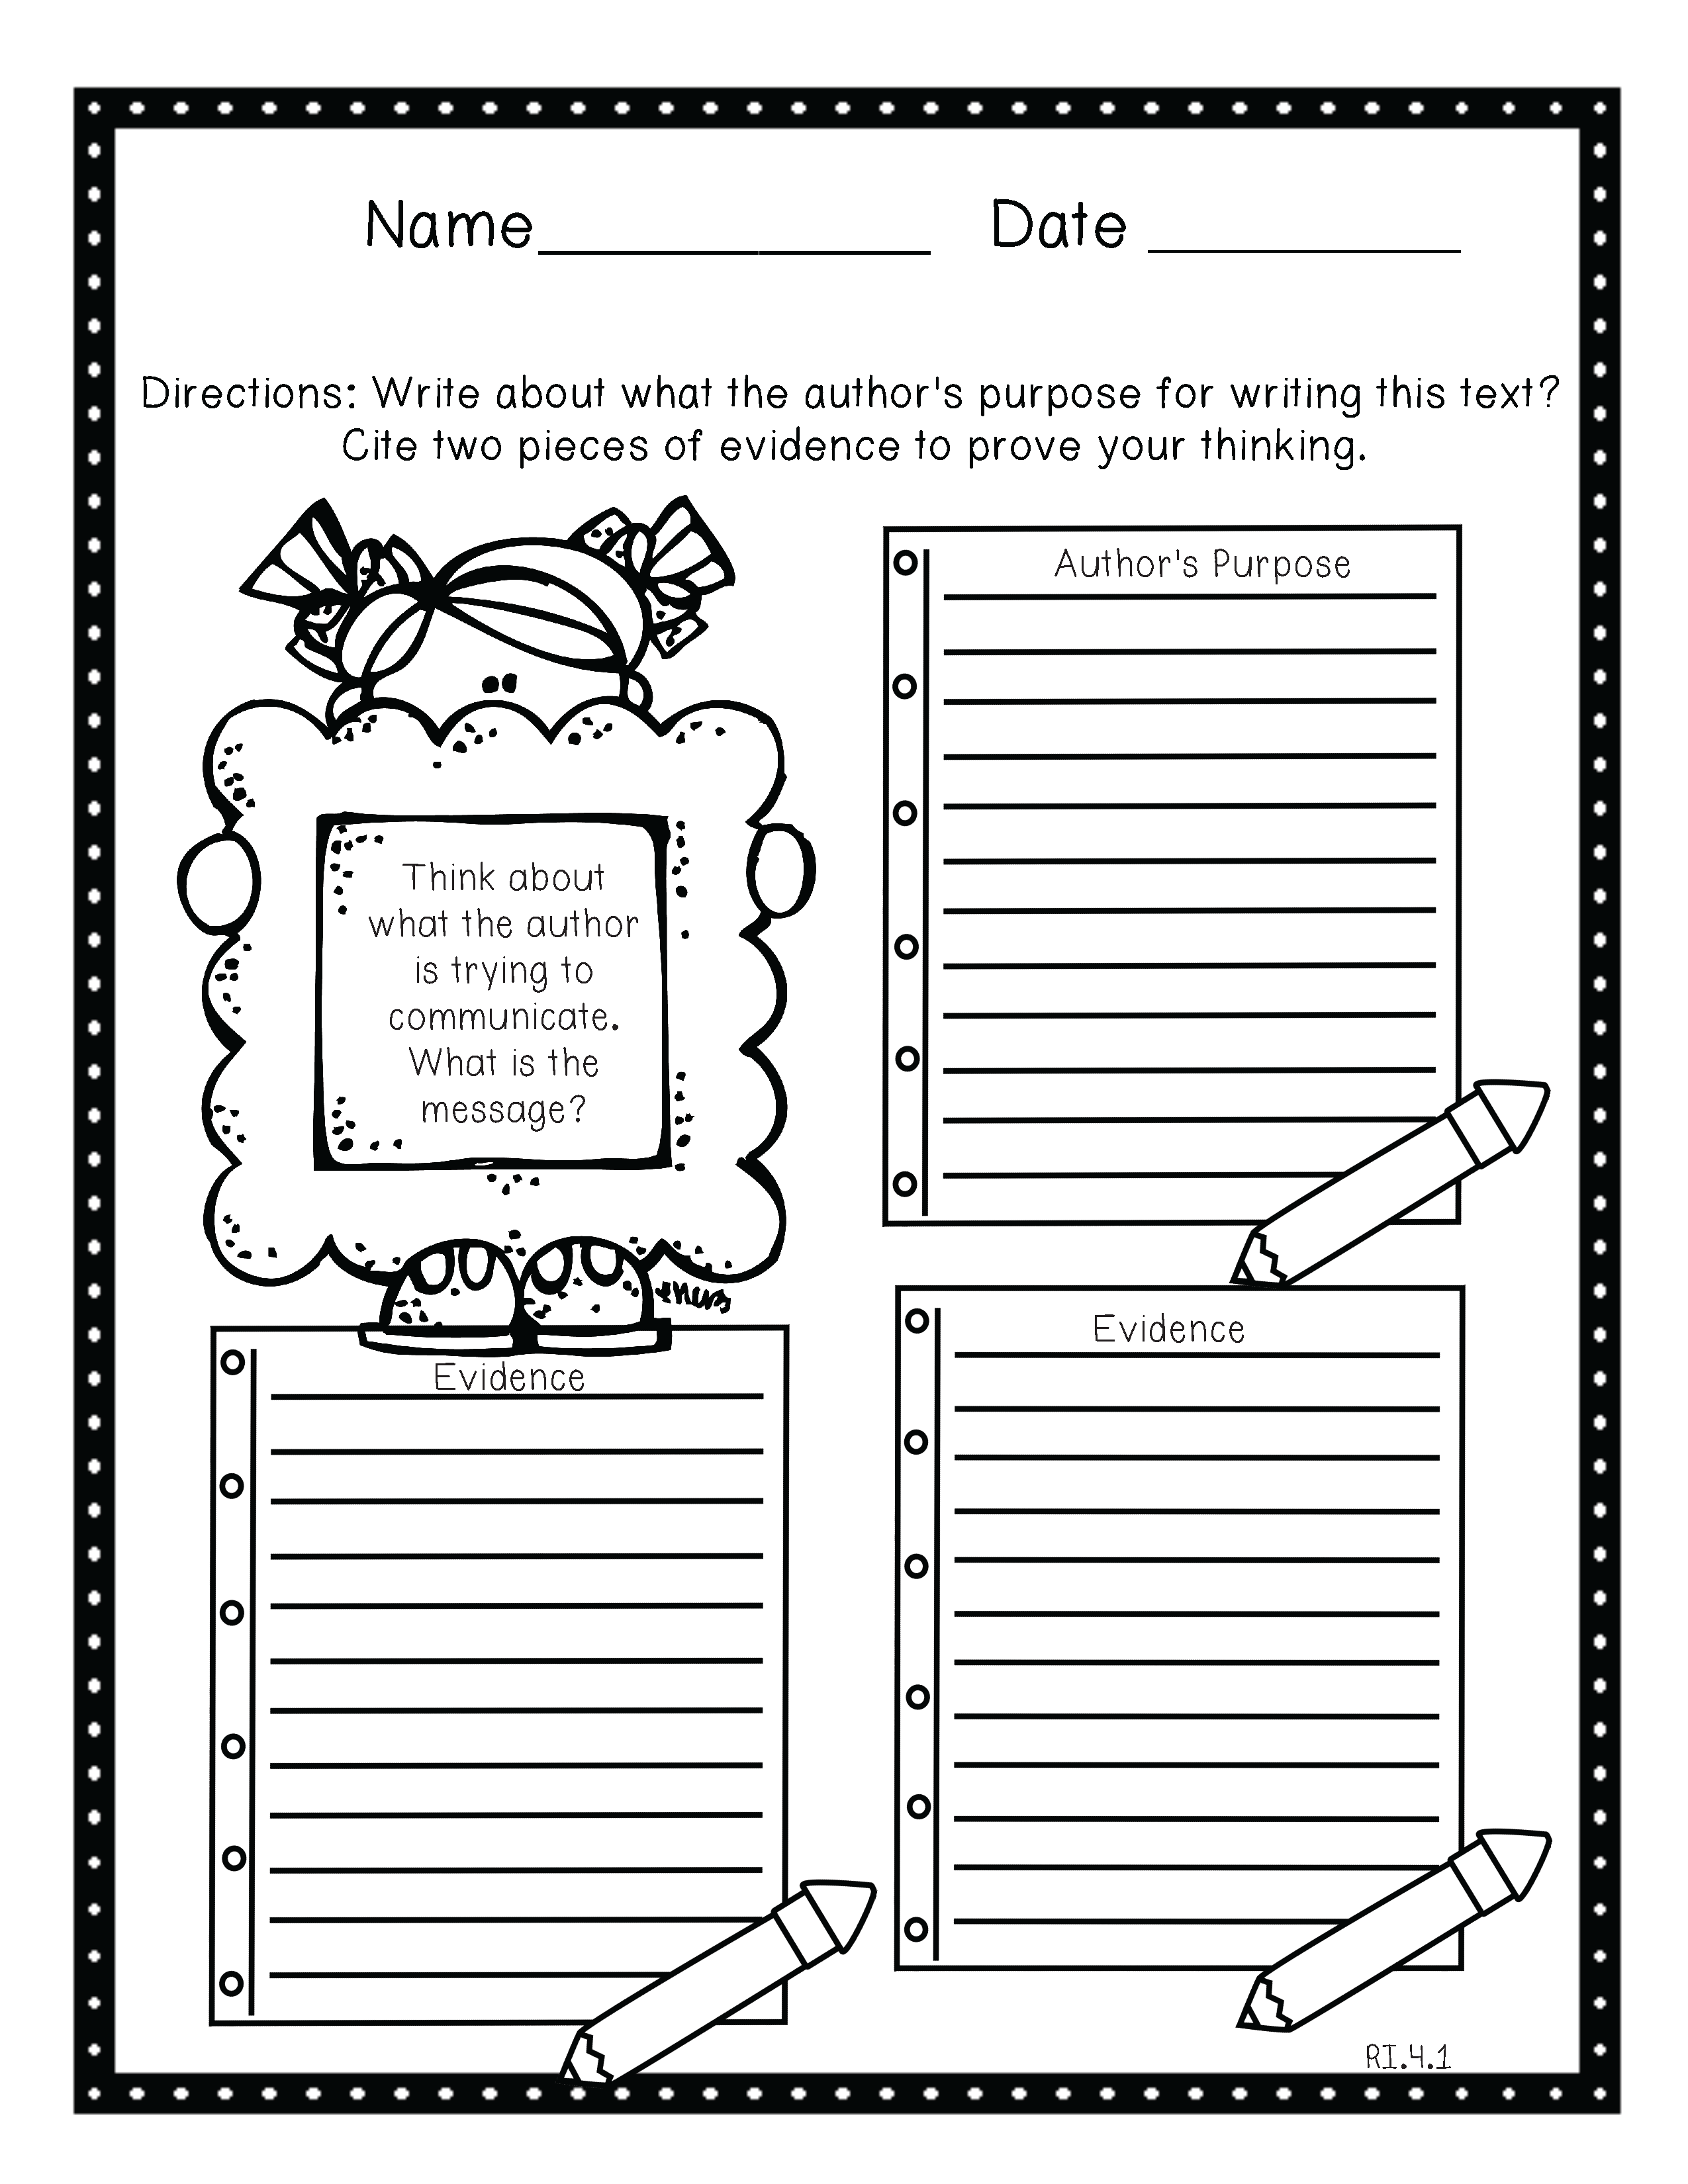 Life in Fifth Grade Close reading toolkits – Close Reading Worksheet